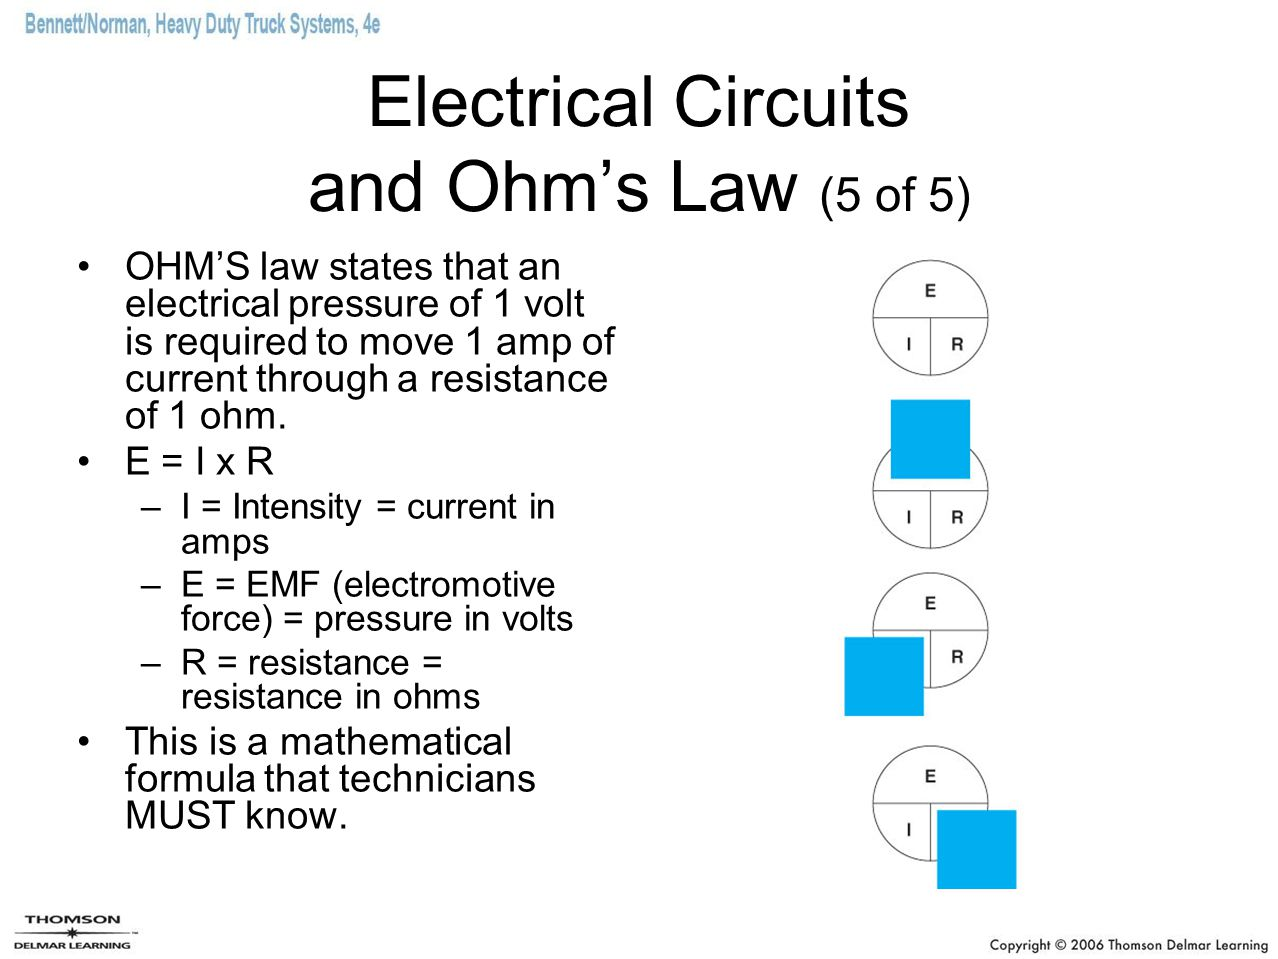 Electrical Circuits and Ohm's Law (5 of 5)